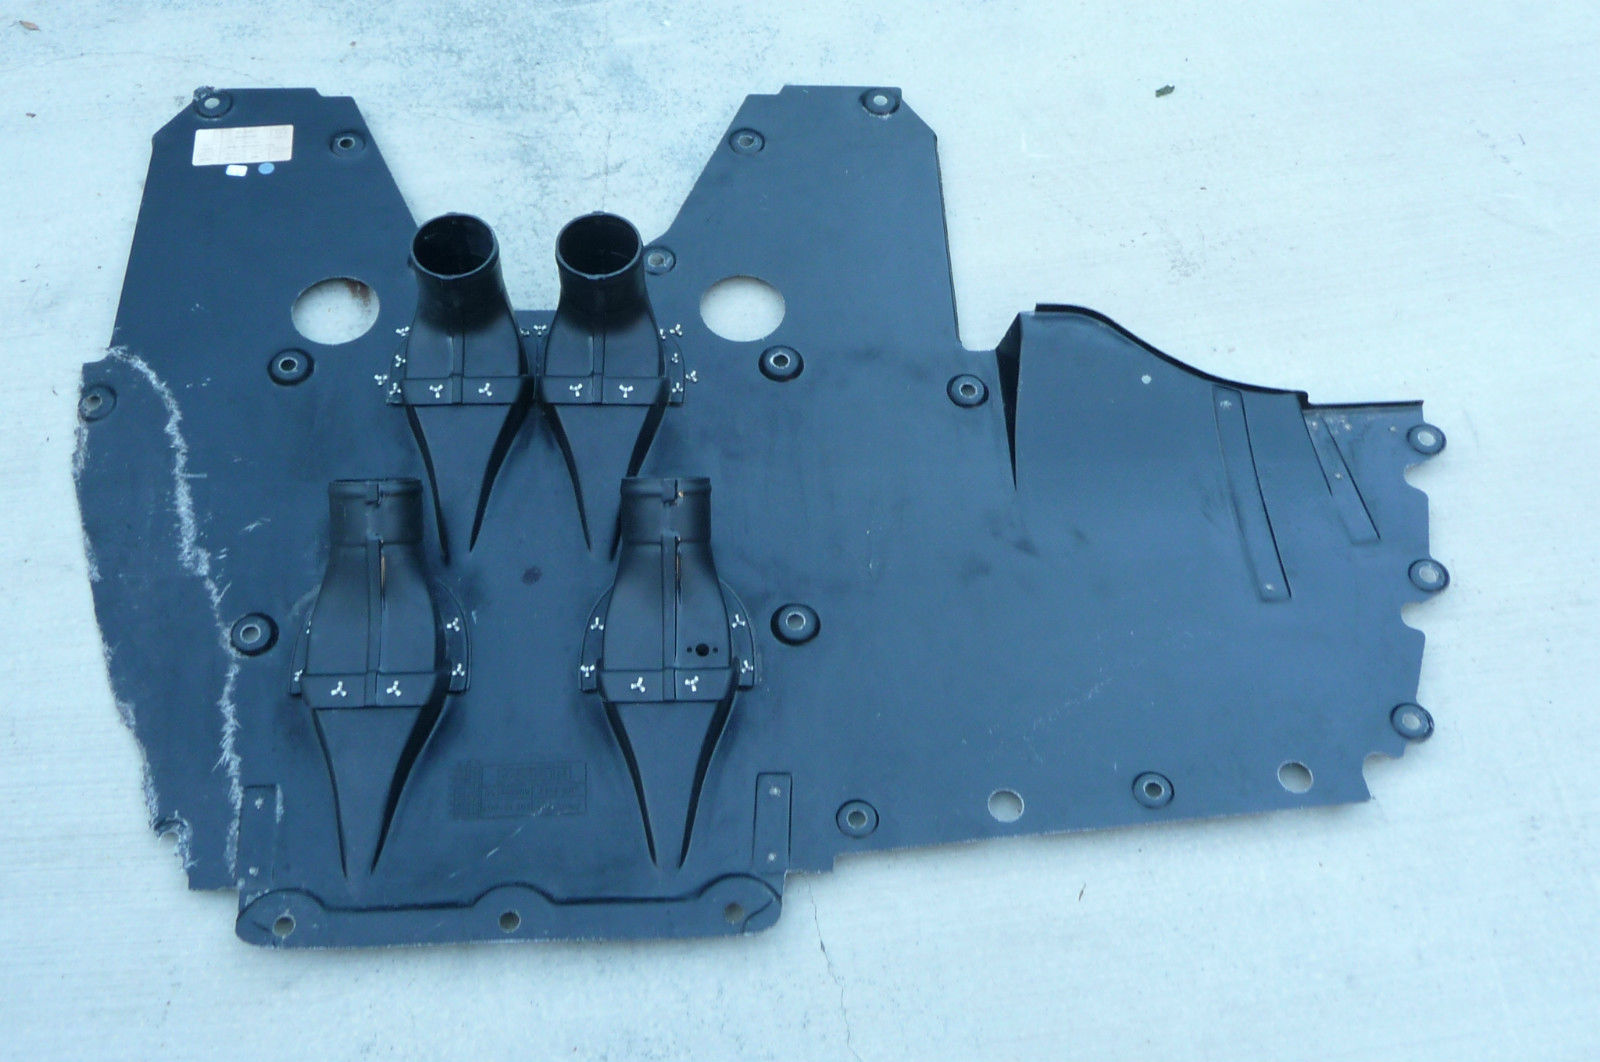 2010 2011 2012 2013 2014 Ferrari 458 Challenge Front Center underbody shield 83799900, 84154500, Fragment  - Used Auto Parts Store | LA Global Parts